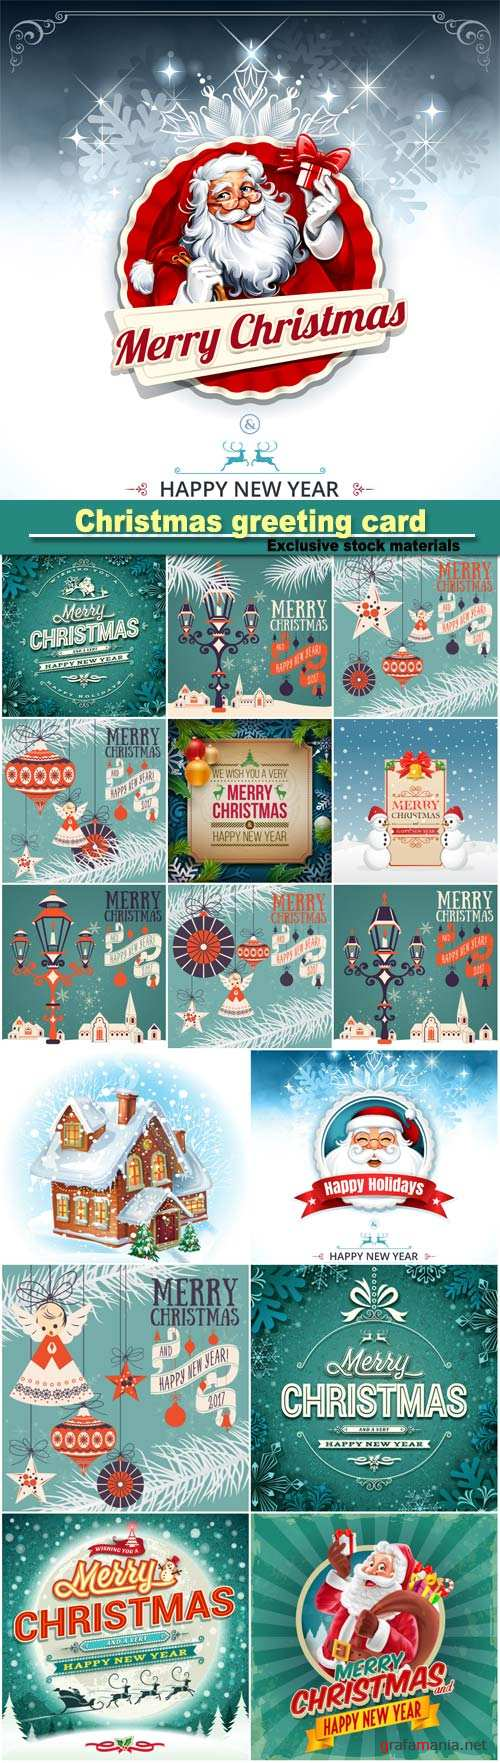 Vintage Christmas greeting card with Santa Claus, calligraphic and typographic design elements